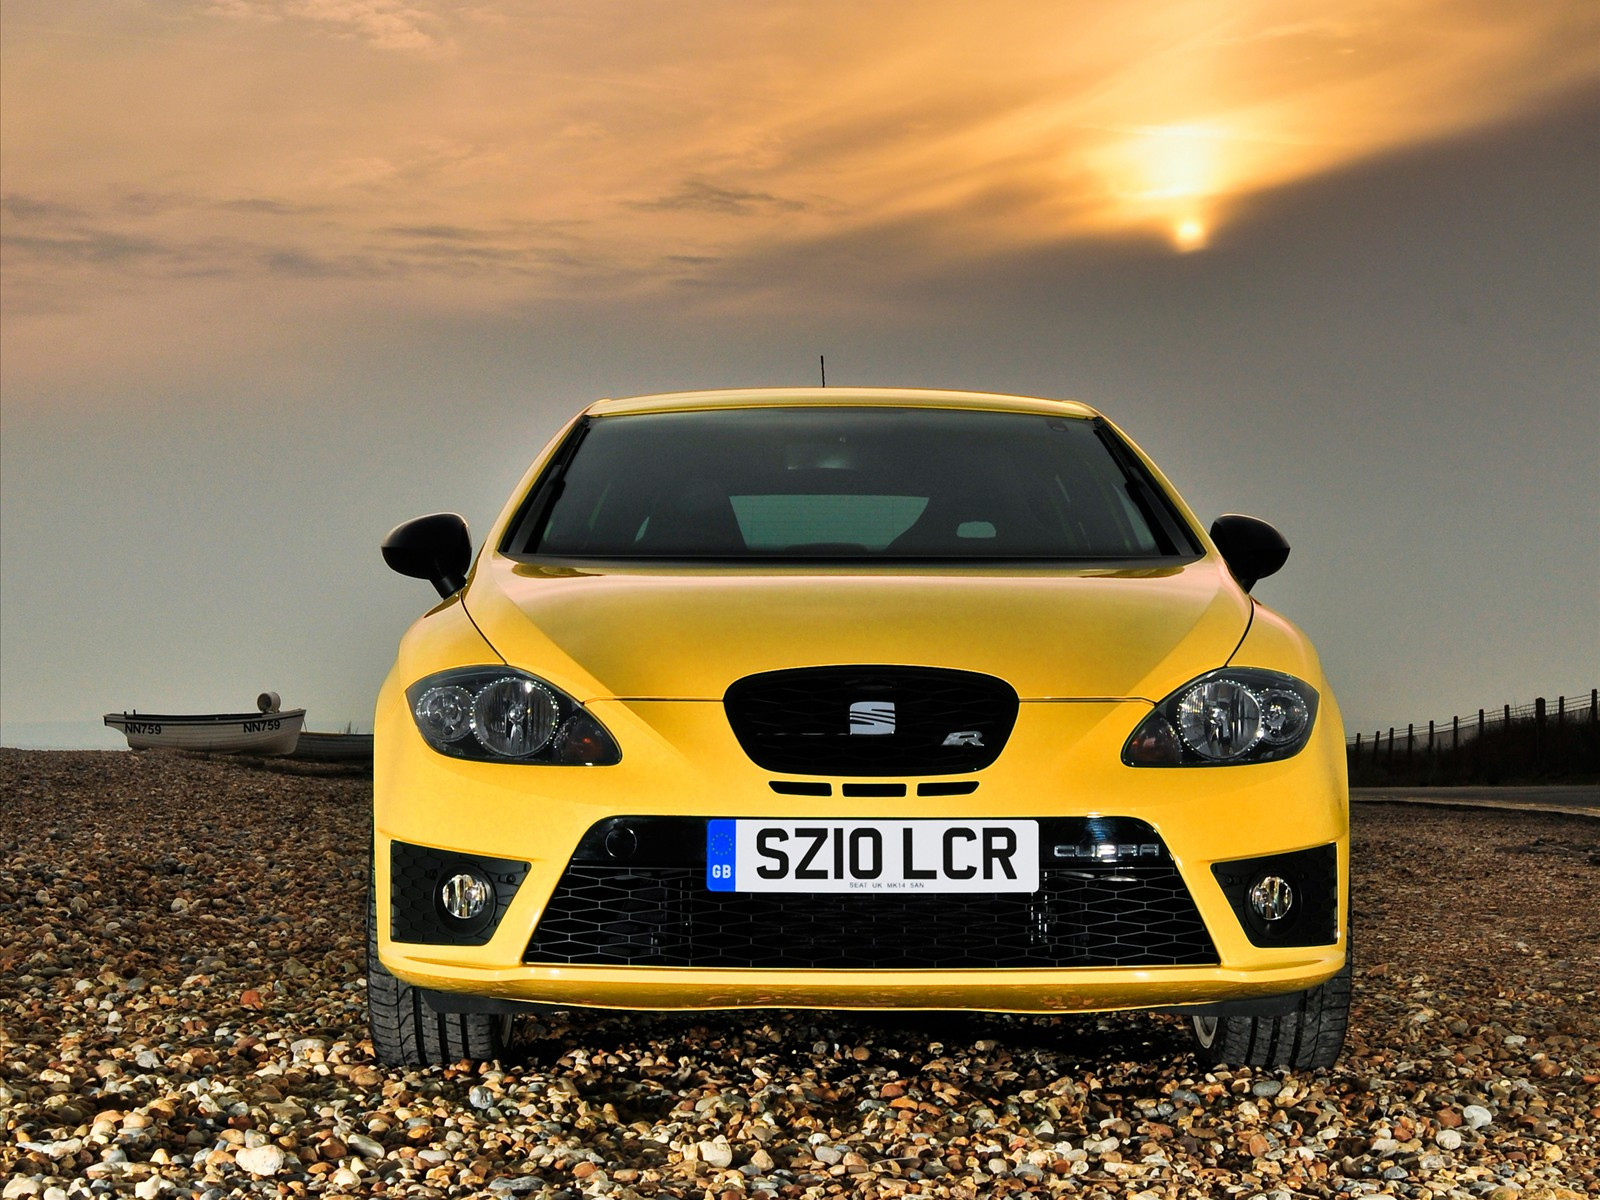 seat leon cupra r free desktop wallpapers for widescreen hd and mobile. Black Bedroom Furniture Sets. Home Design Ideas